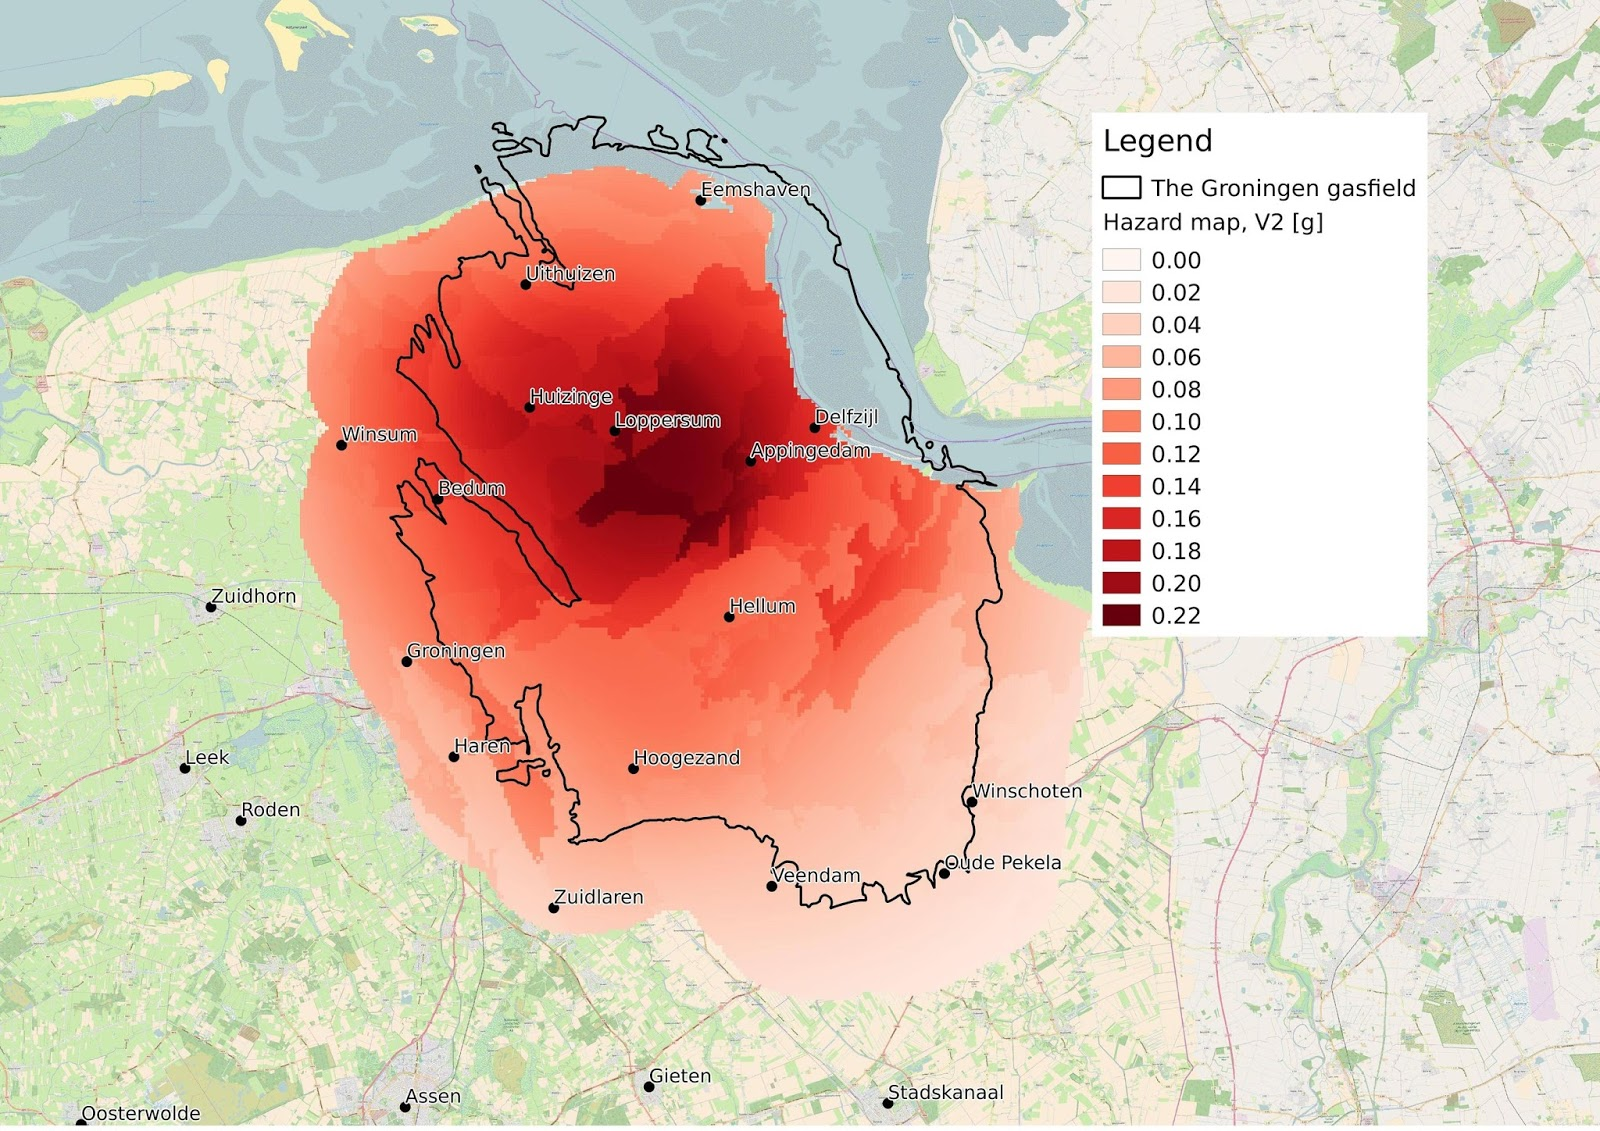 Seismological hazard map of Groningen (Netherlands)